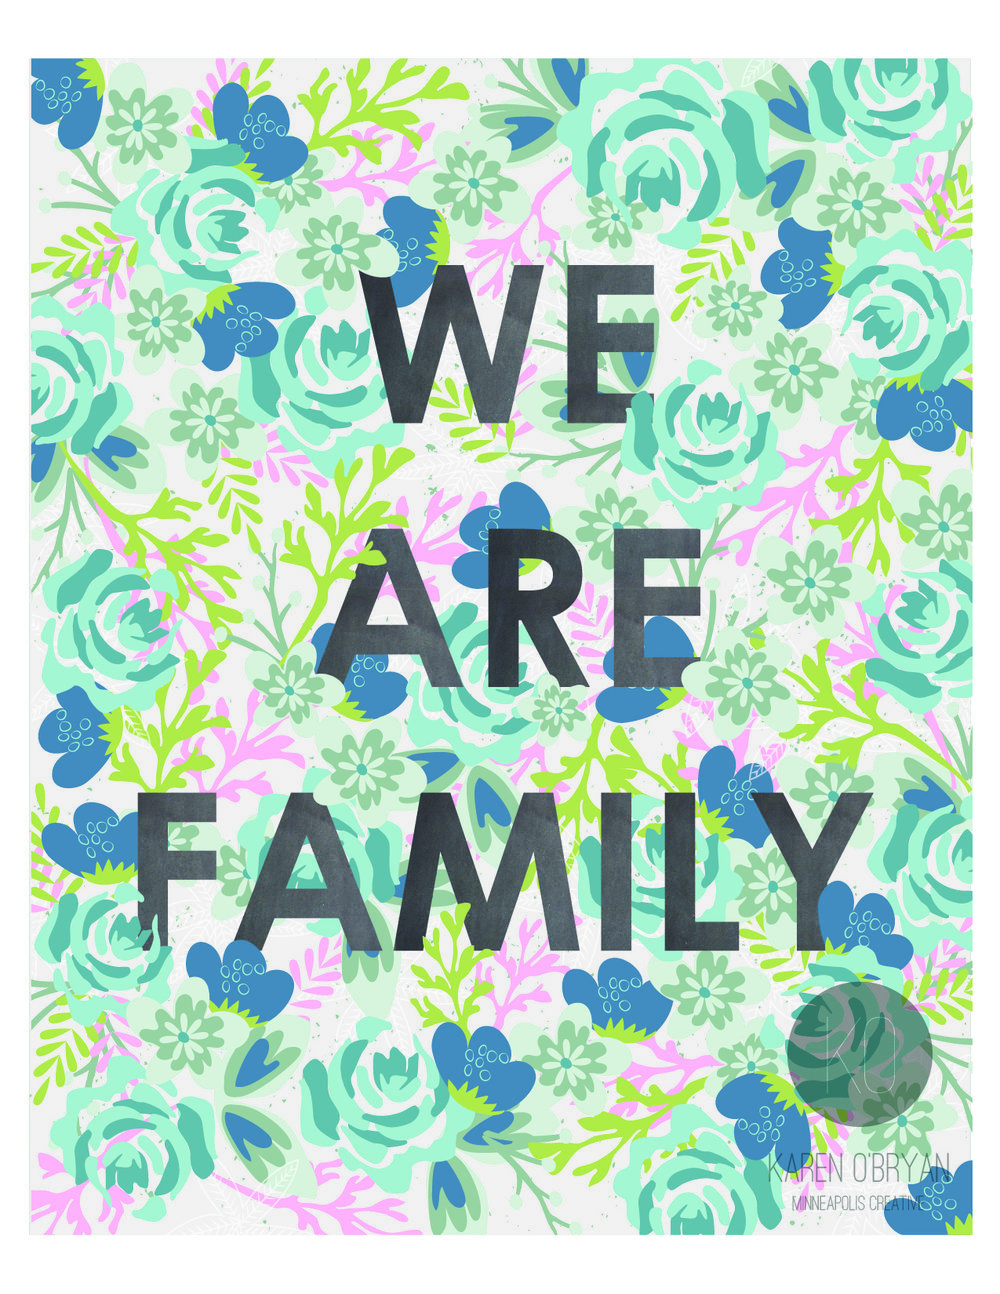 We_Are_Family(web)-01.jpg